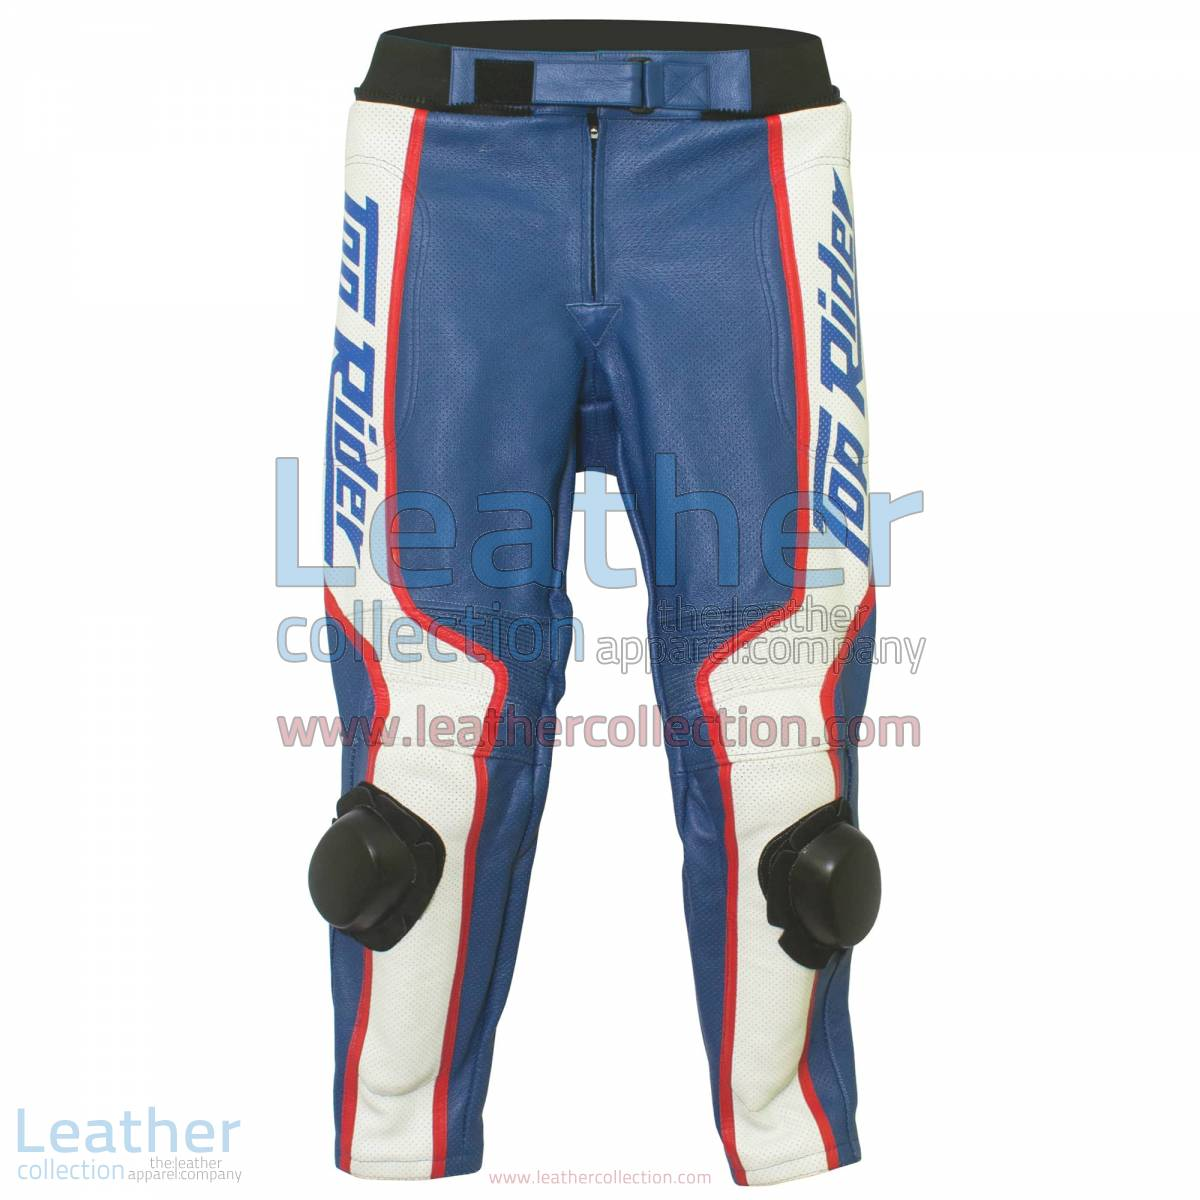 Freddie Spencer Honda Daytona 1985 Motorcycle Racing Pant